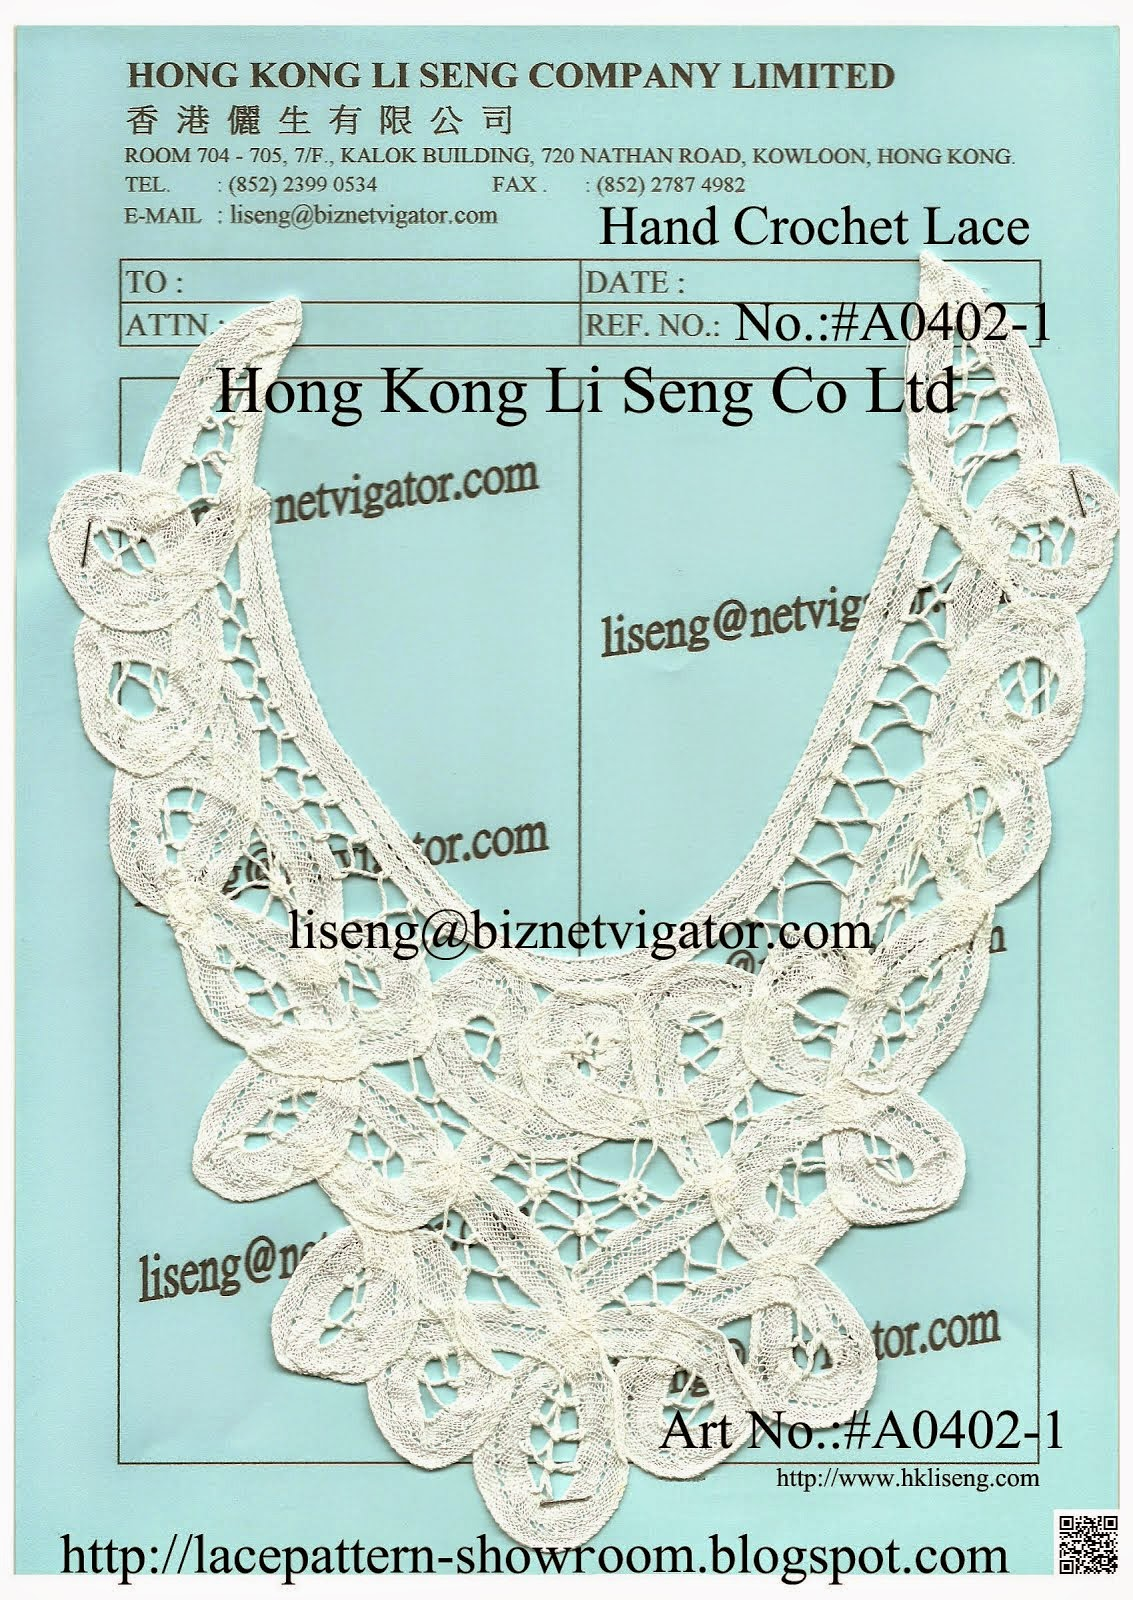 Chinese Handmade Crochet Applique Wholesale and Manufacturer - Hong Kong Li Seng Co Ltd